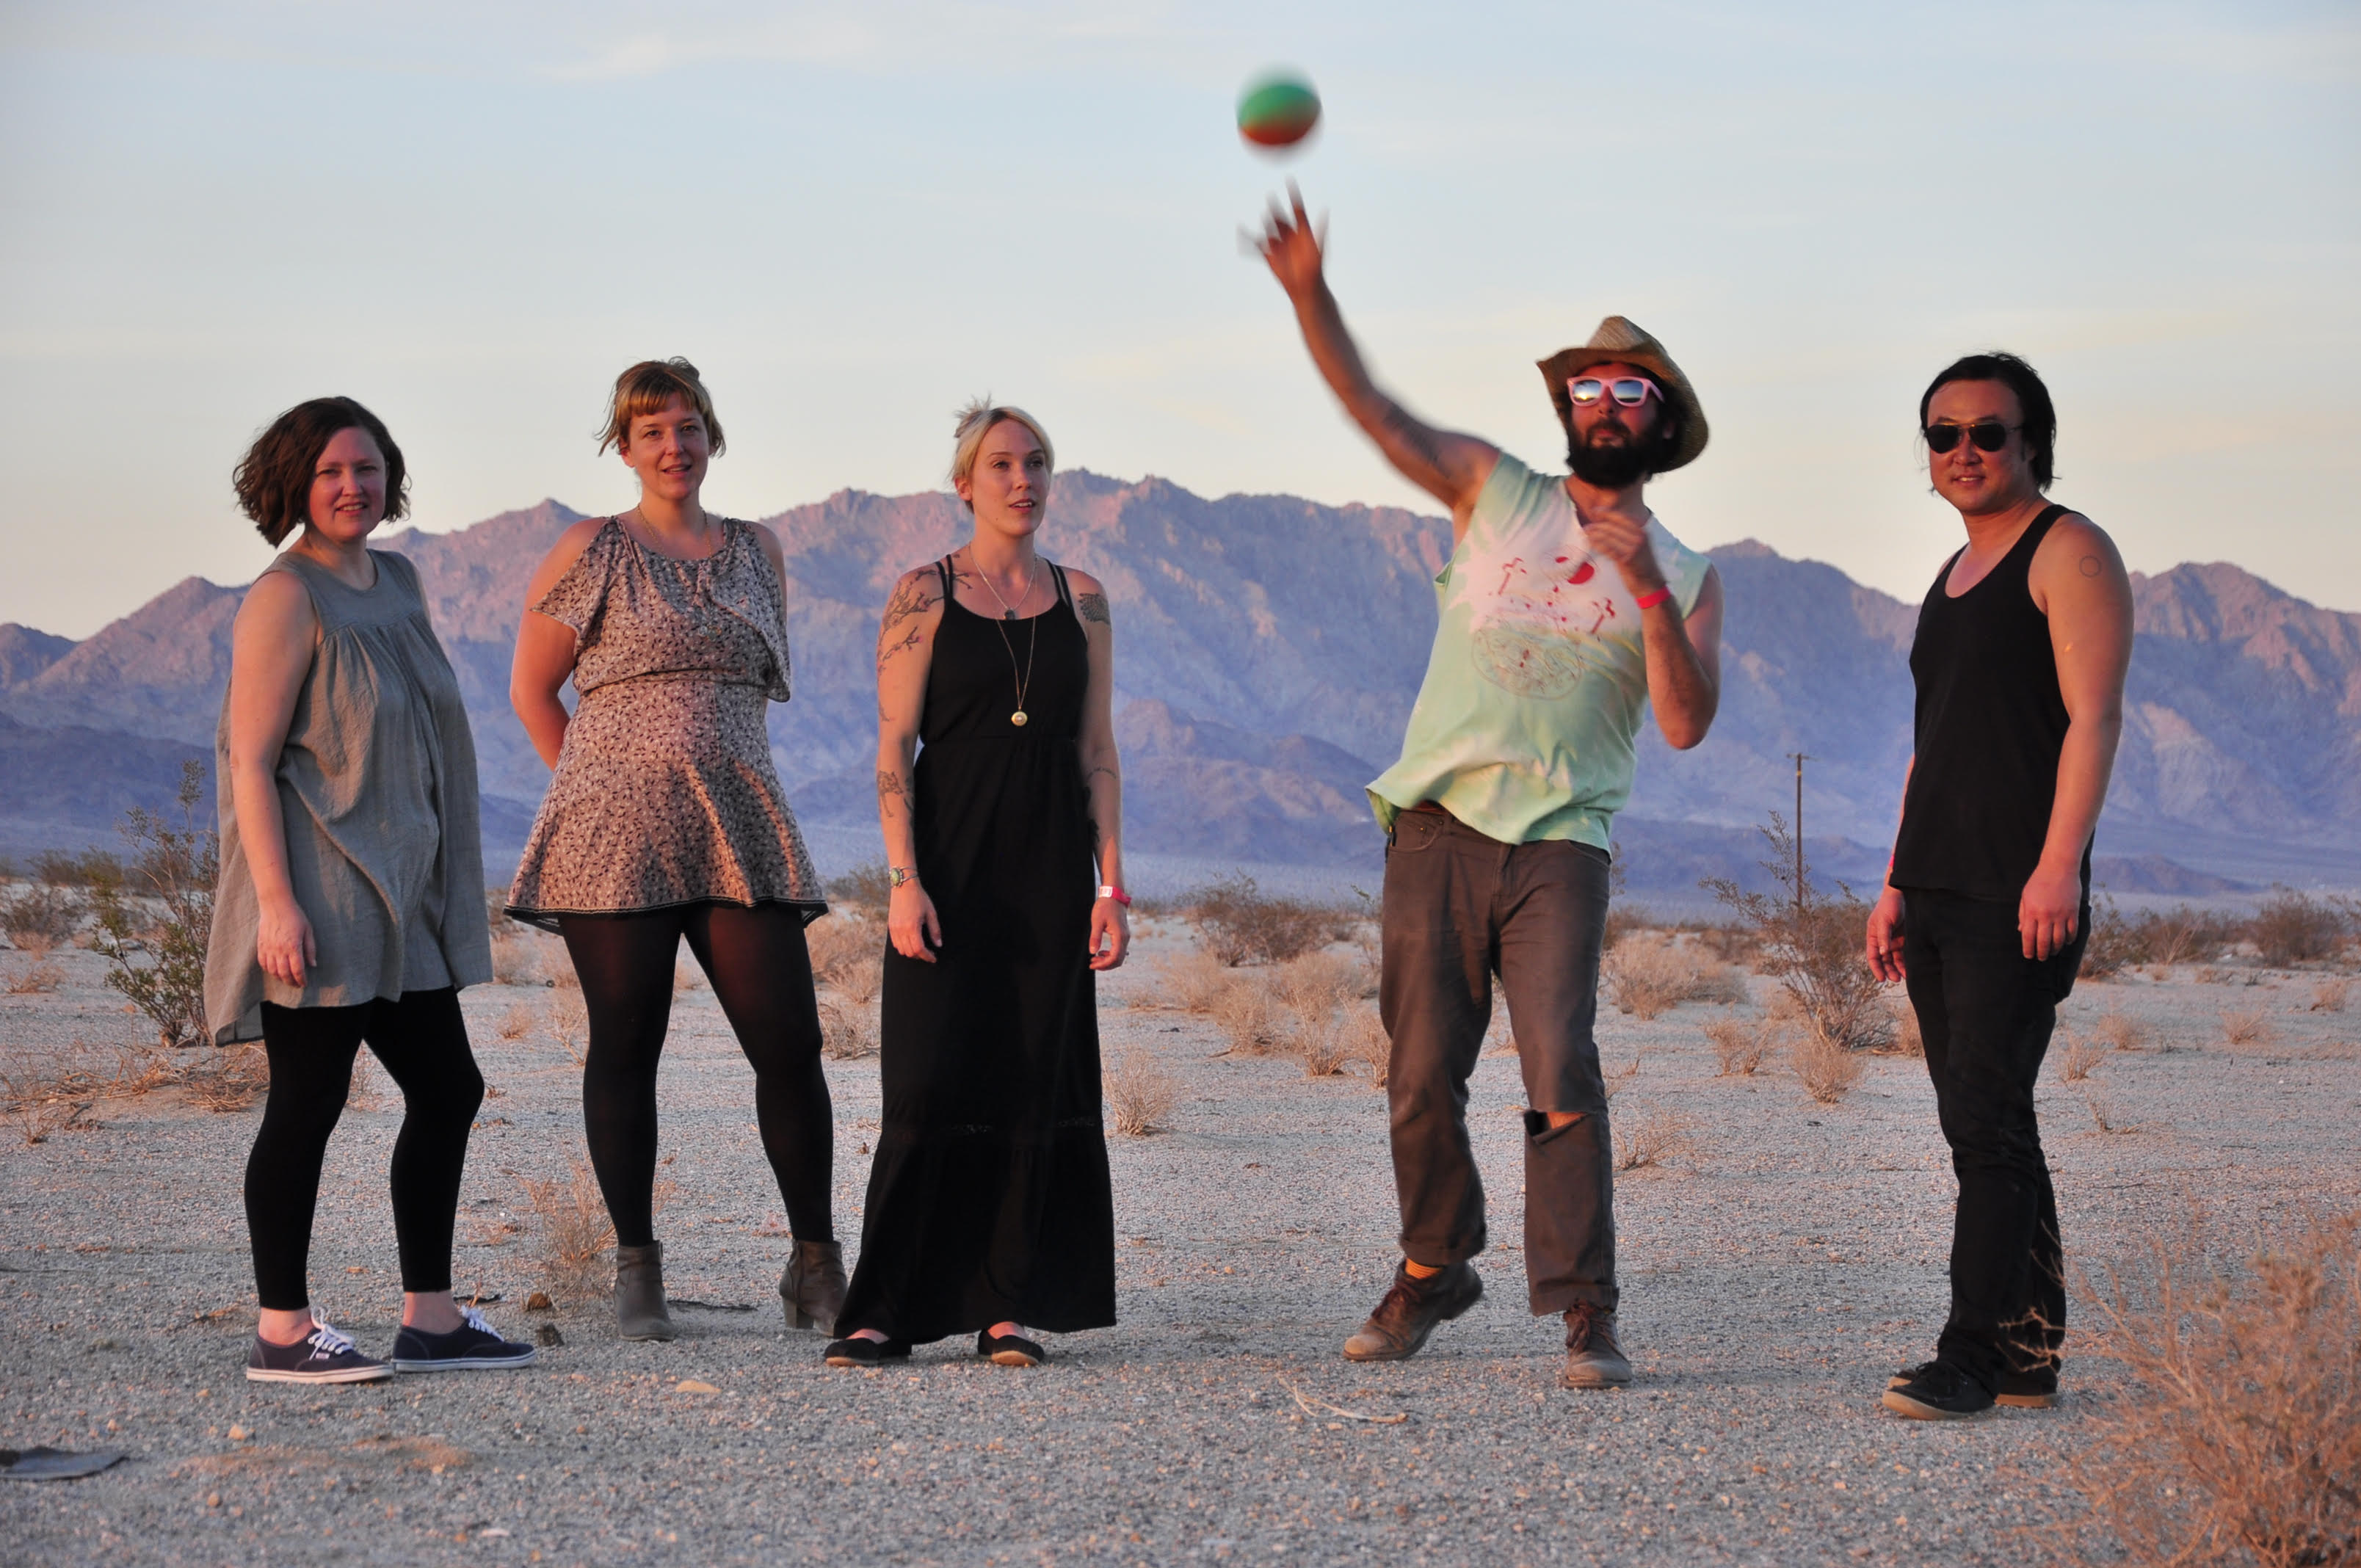 Tim Cohen (second from right) in the desert with friends.